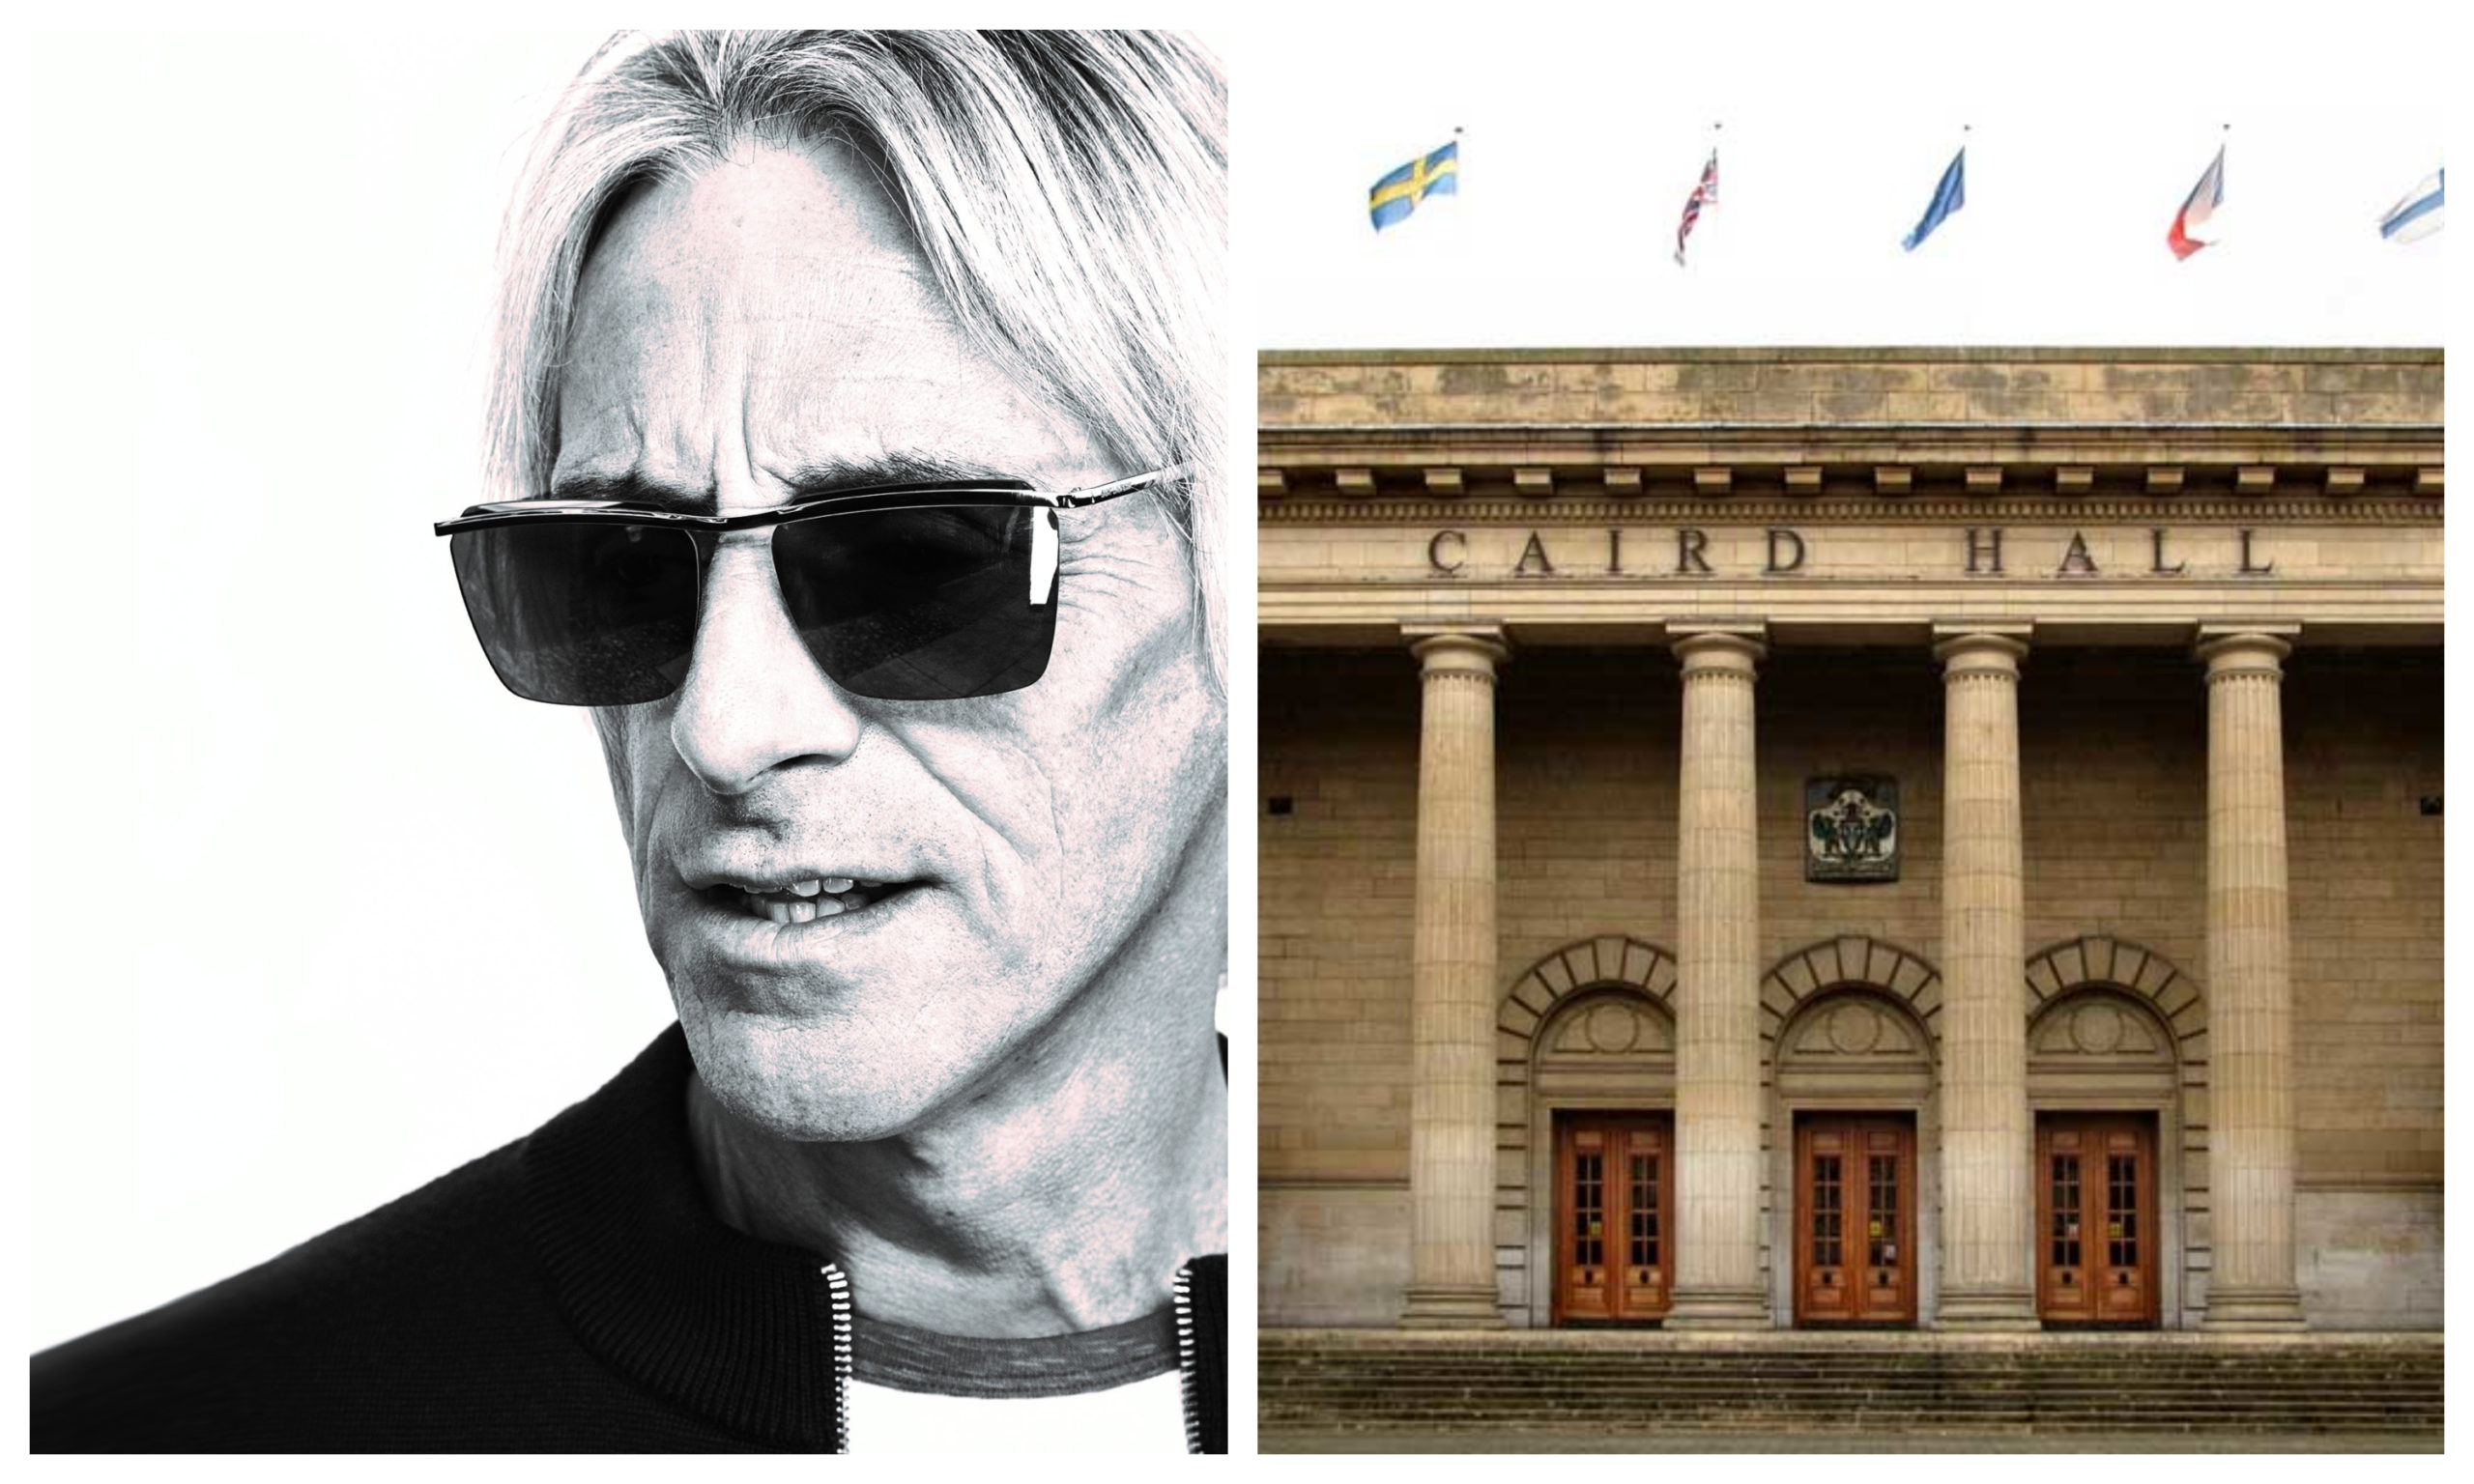 Paul Weller will play at the Caird Hall in November.